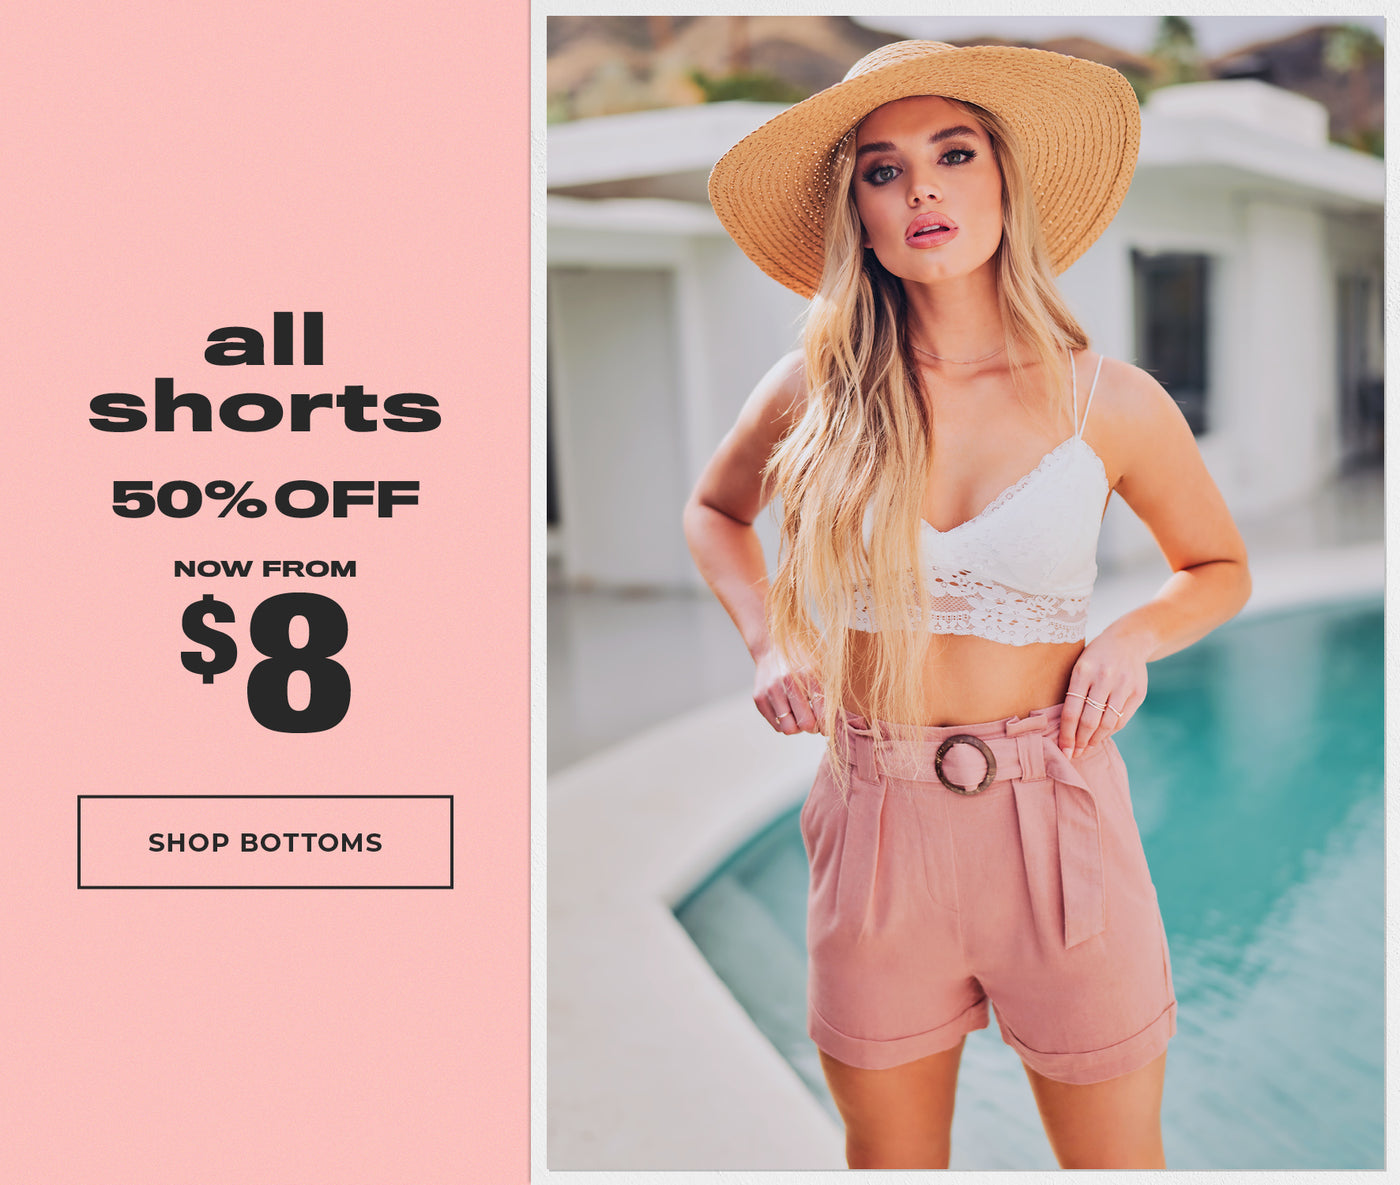 Sirens | Shorts 50% Off from $8 - Shop now